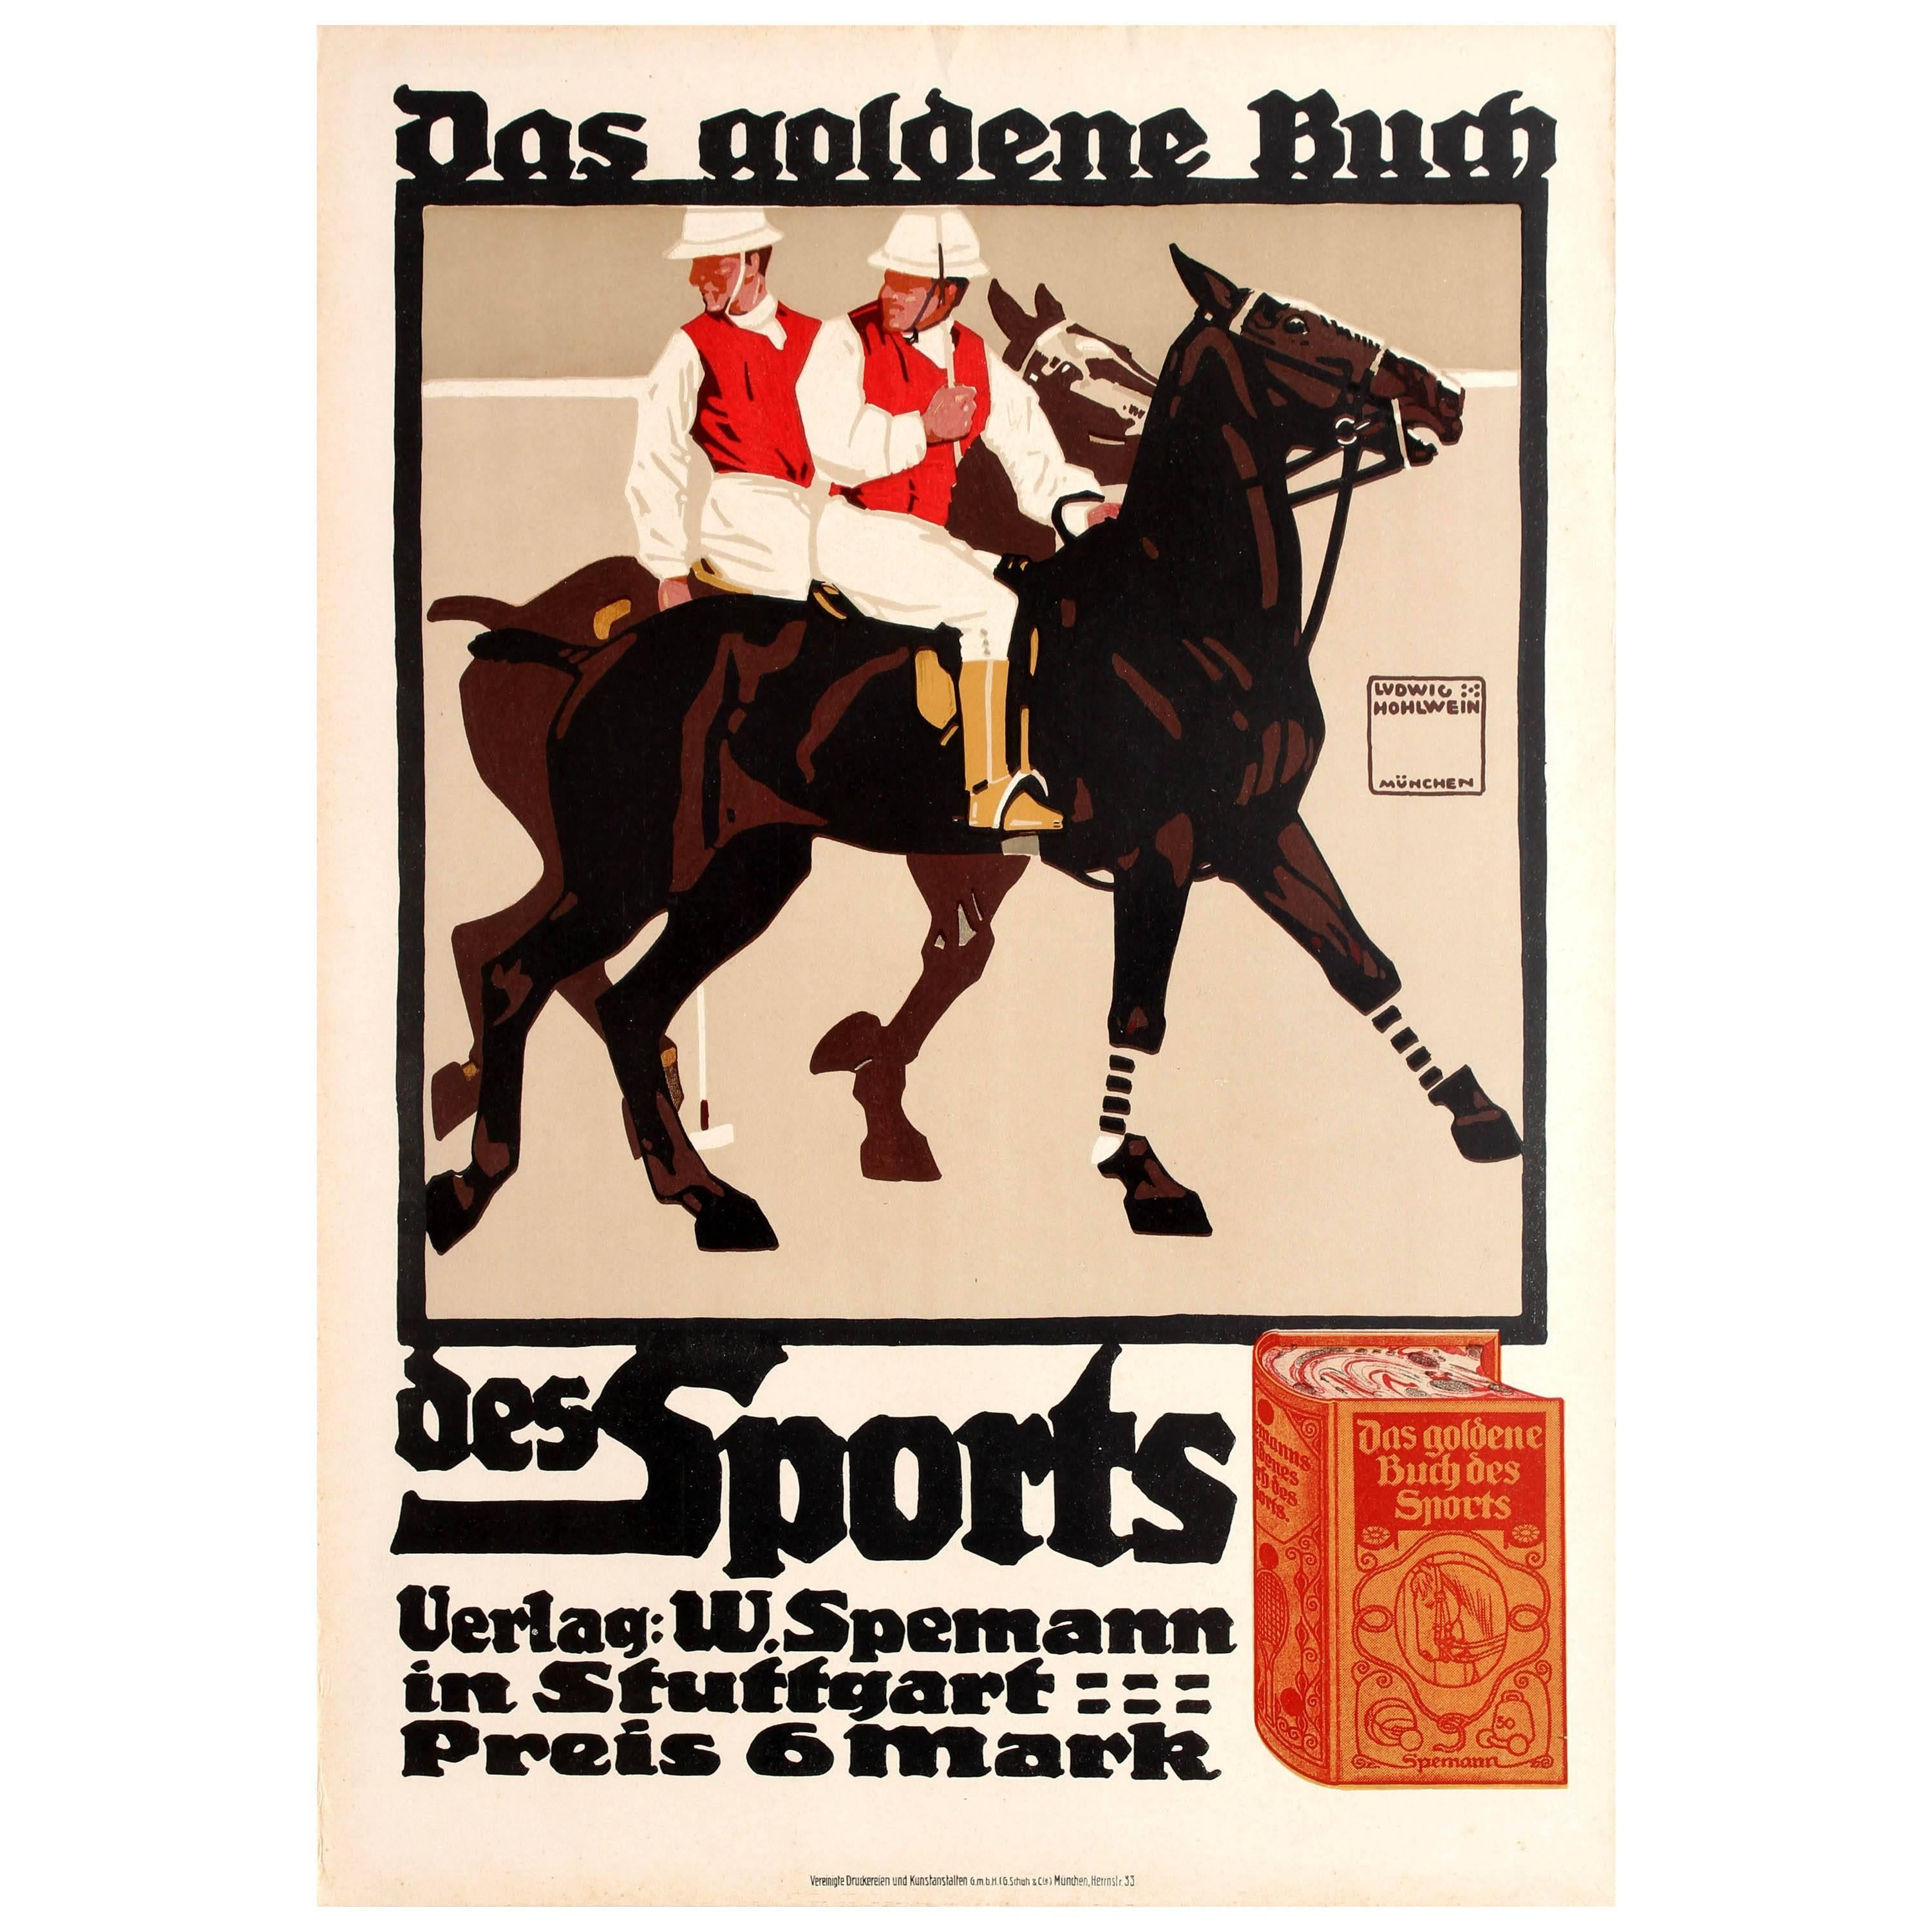 Original Antique Poster by Hohlwein for the Golden Book of Sports Featuring Polo